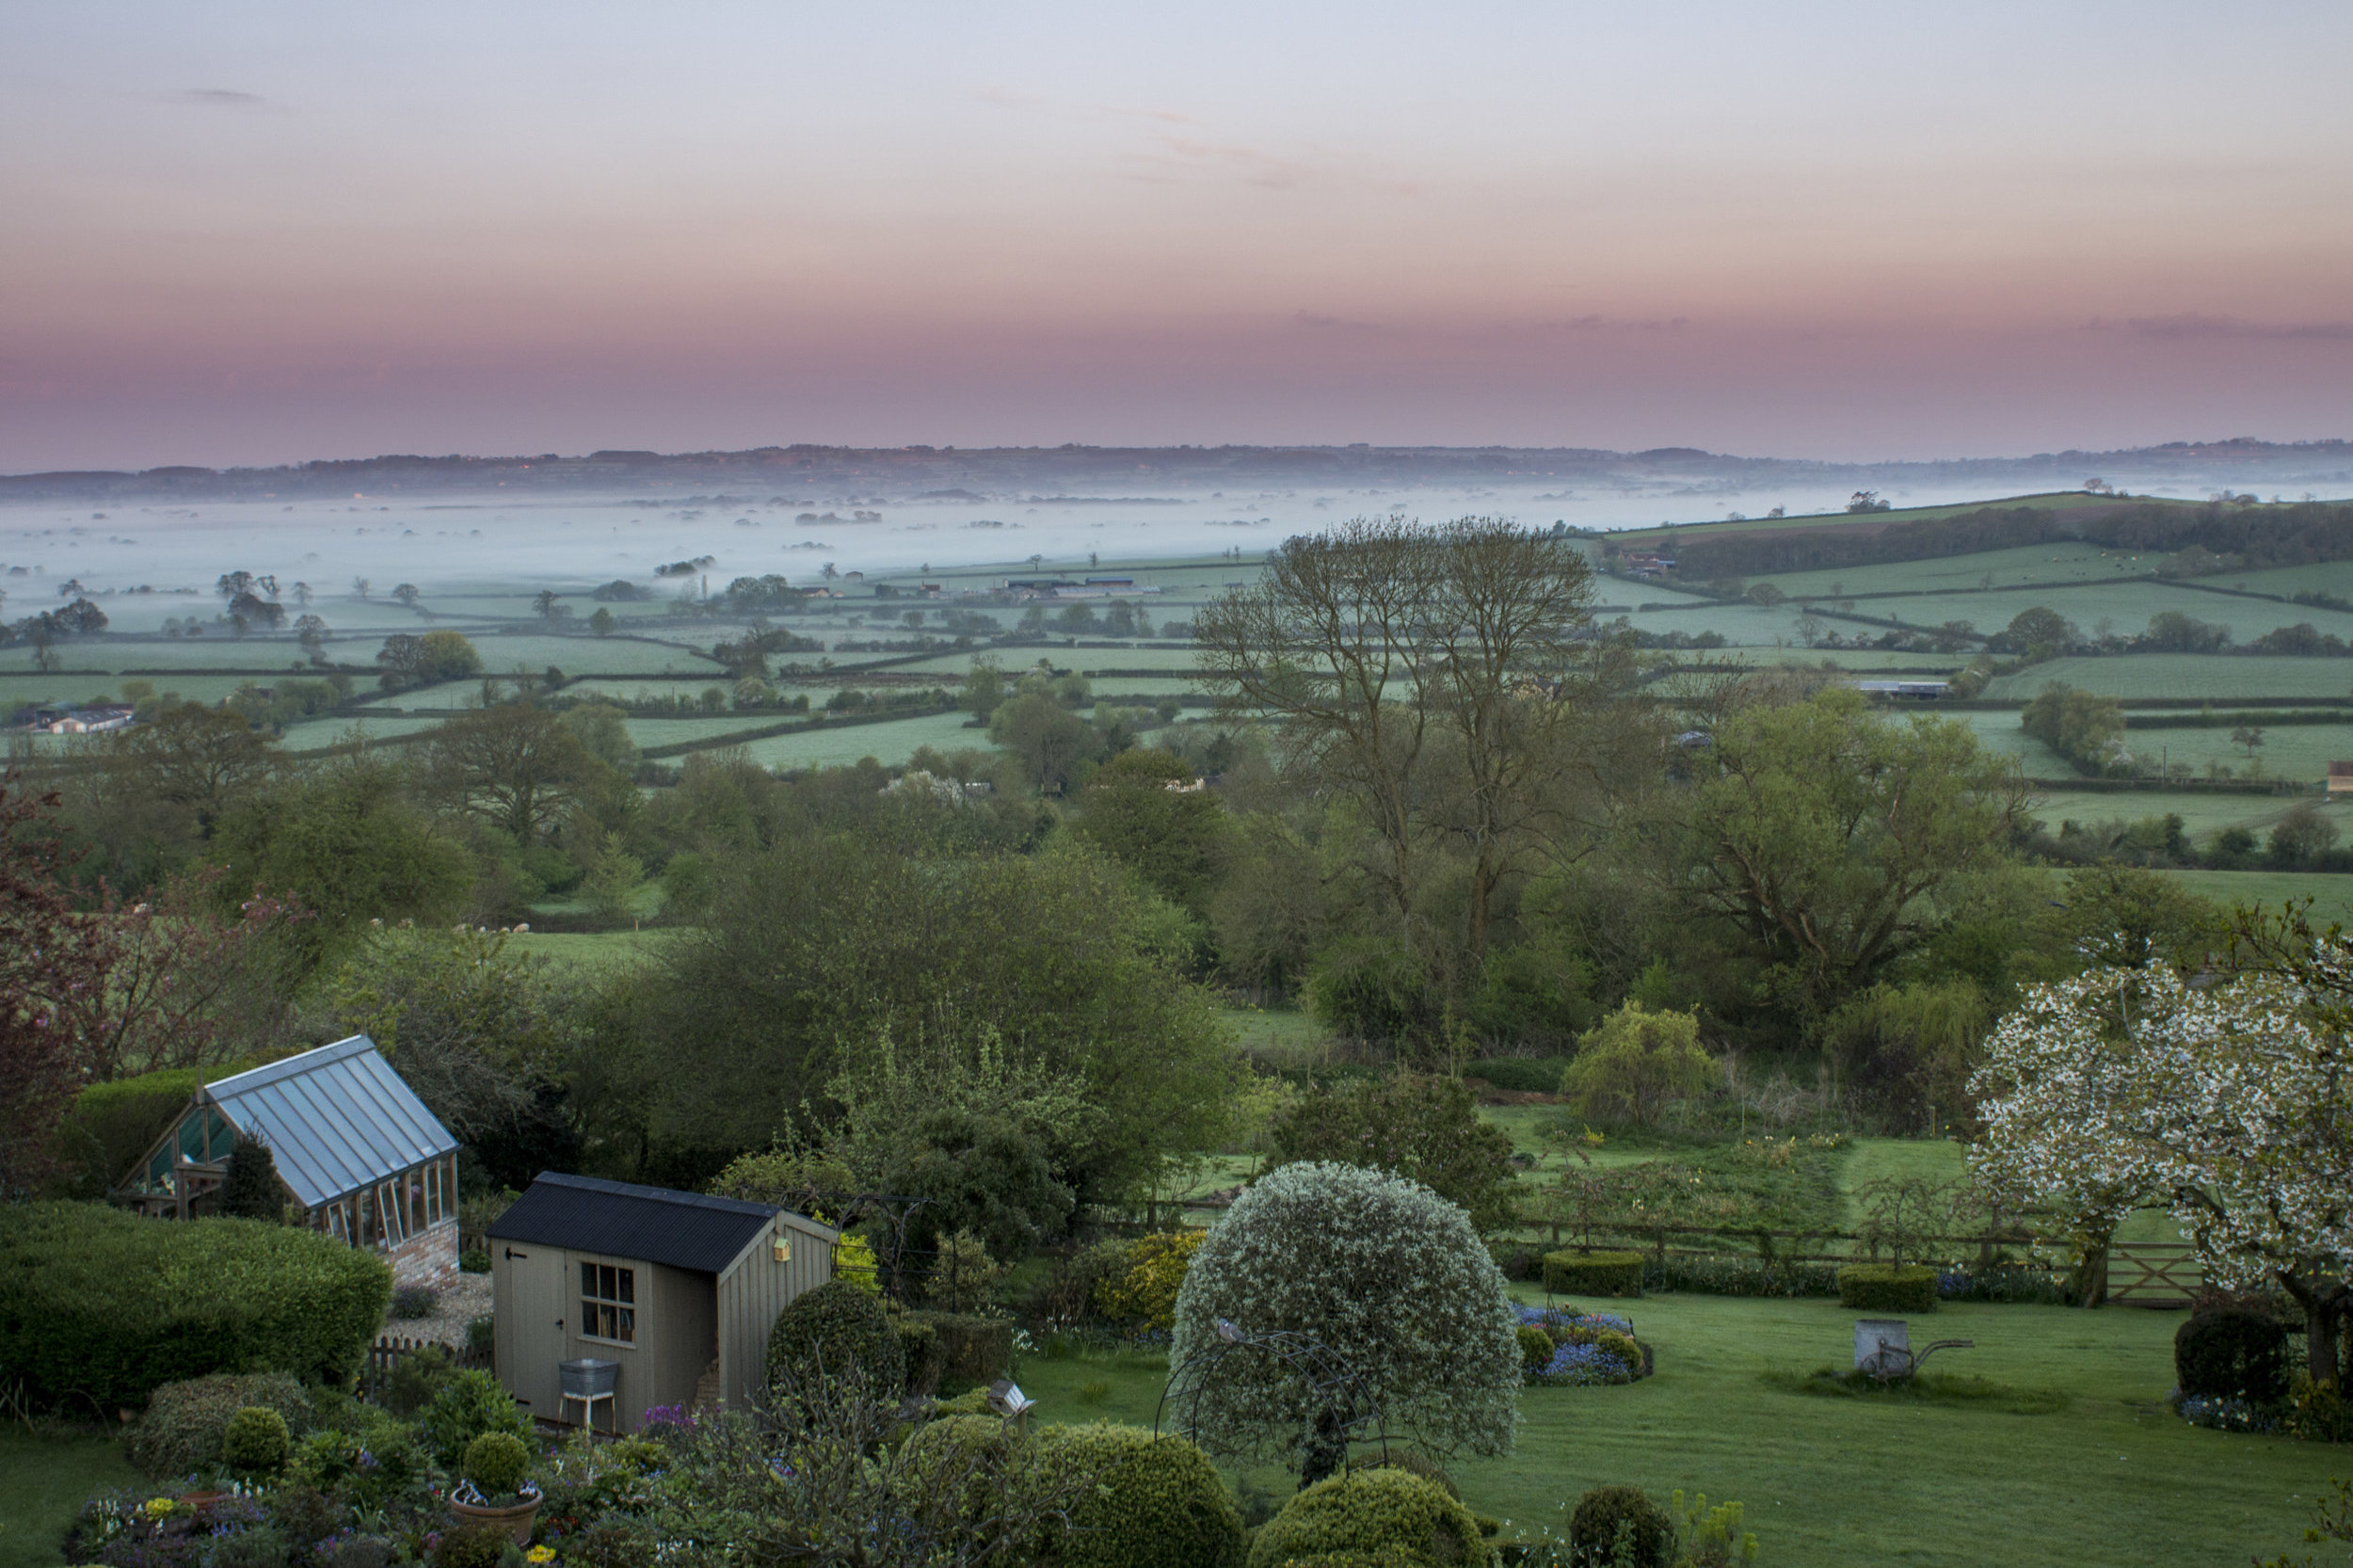 The view across the valley at dawn